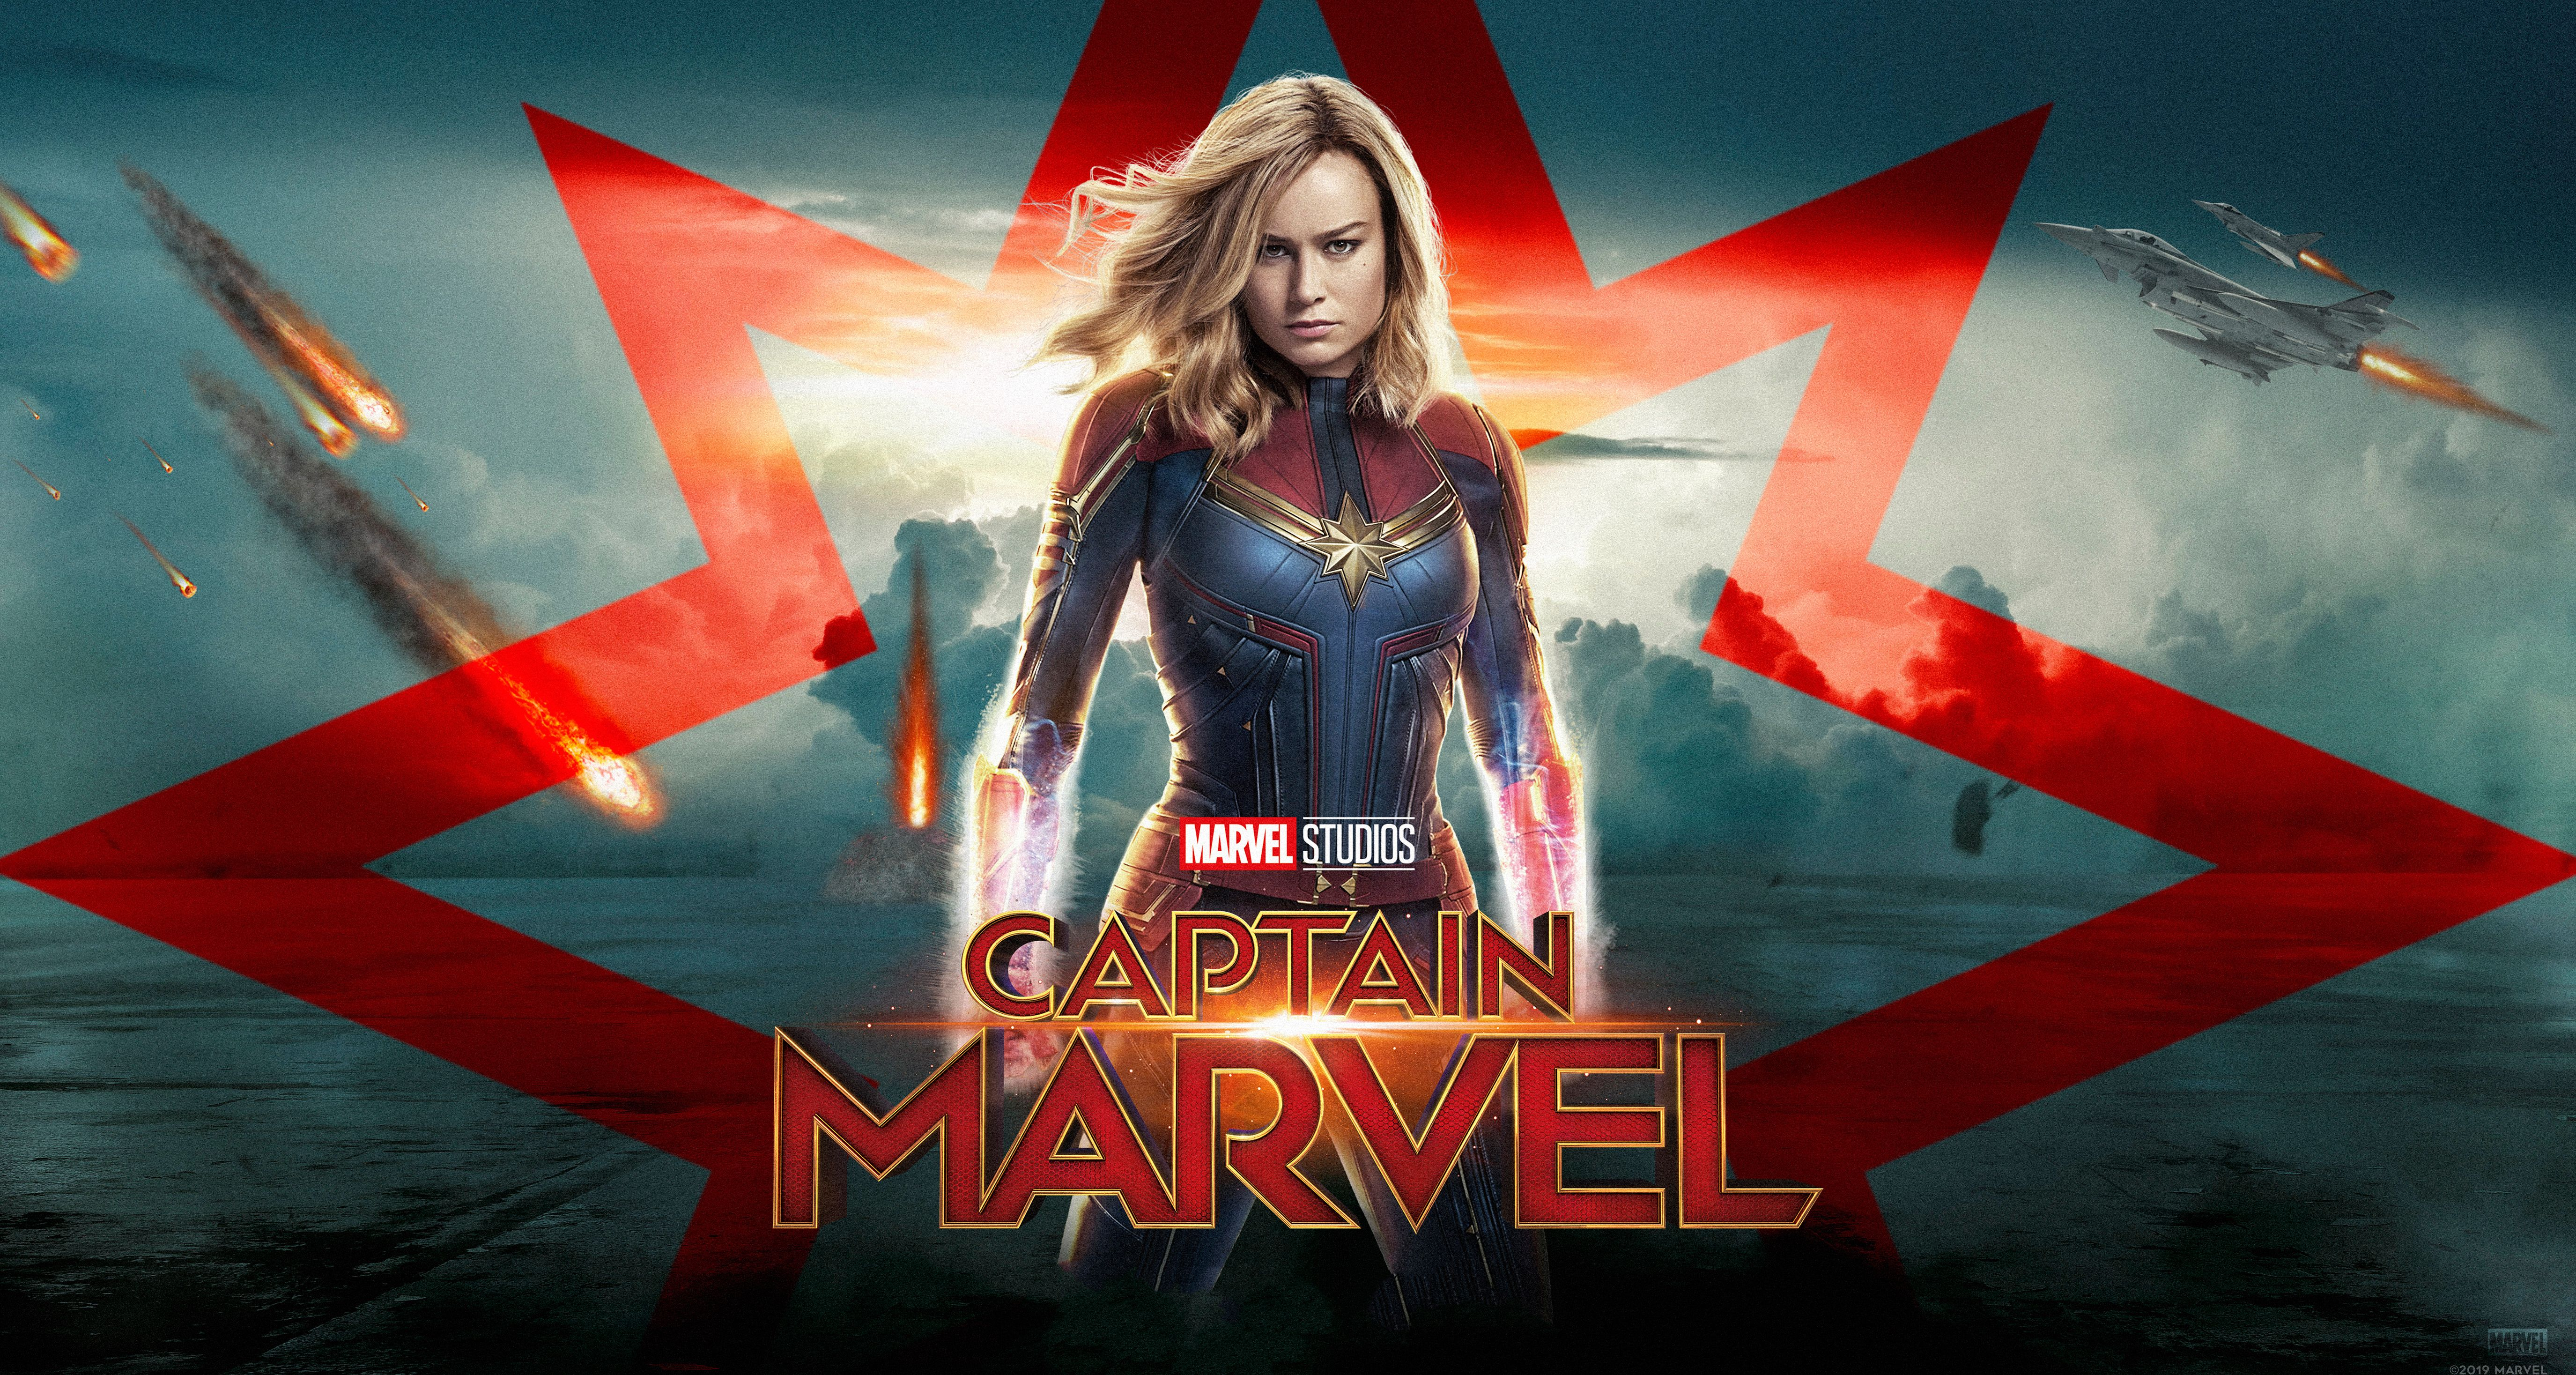 Captain Marvel 4k Poster Movies Wallpapers Hd Wallpapers Carol Danvers Wallpapers Captain Marvel Wallpapers Captain Marvel 4k Captain Marvel Marvel Movies